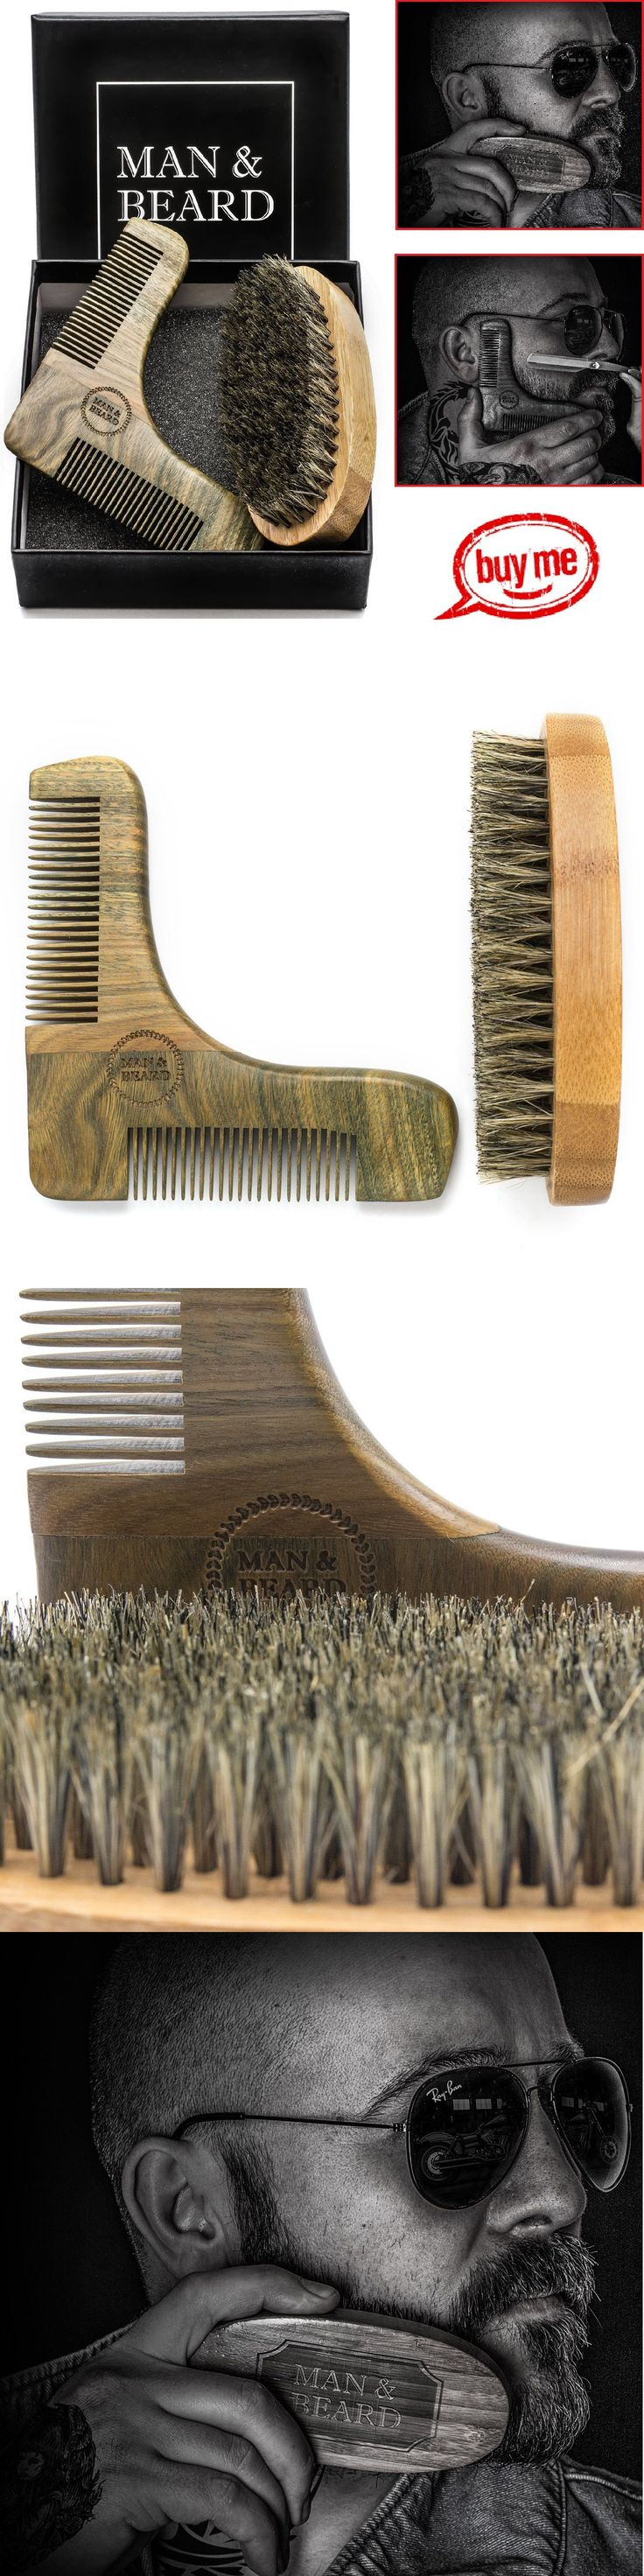 Brushes and Combs: Beard Brush Boar Bristles Mustache Wood Comb Handmade Grooming Kit Men Care Set -> BUY IT NOW ONLY: $59.97 on eBay!